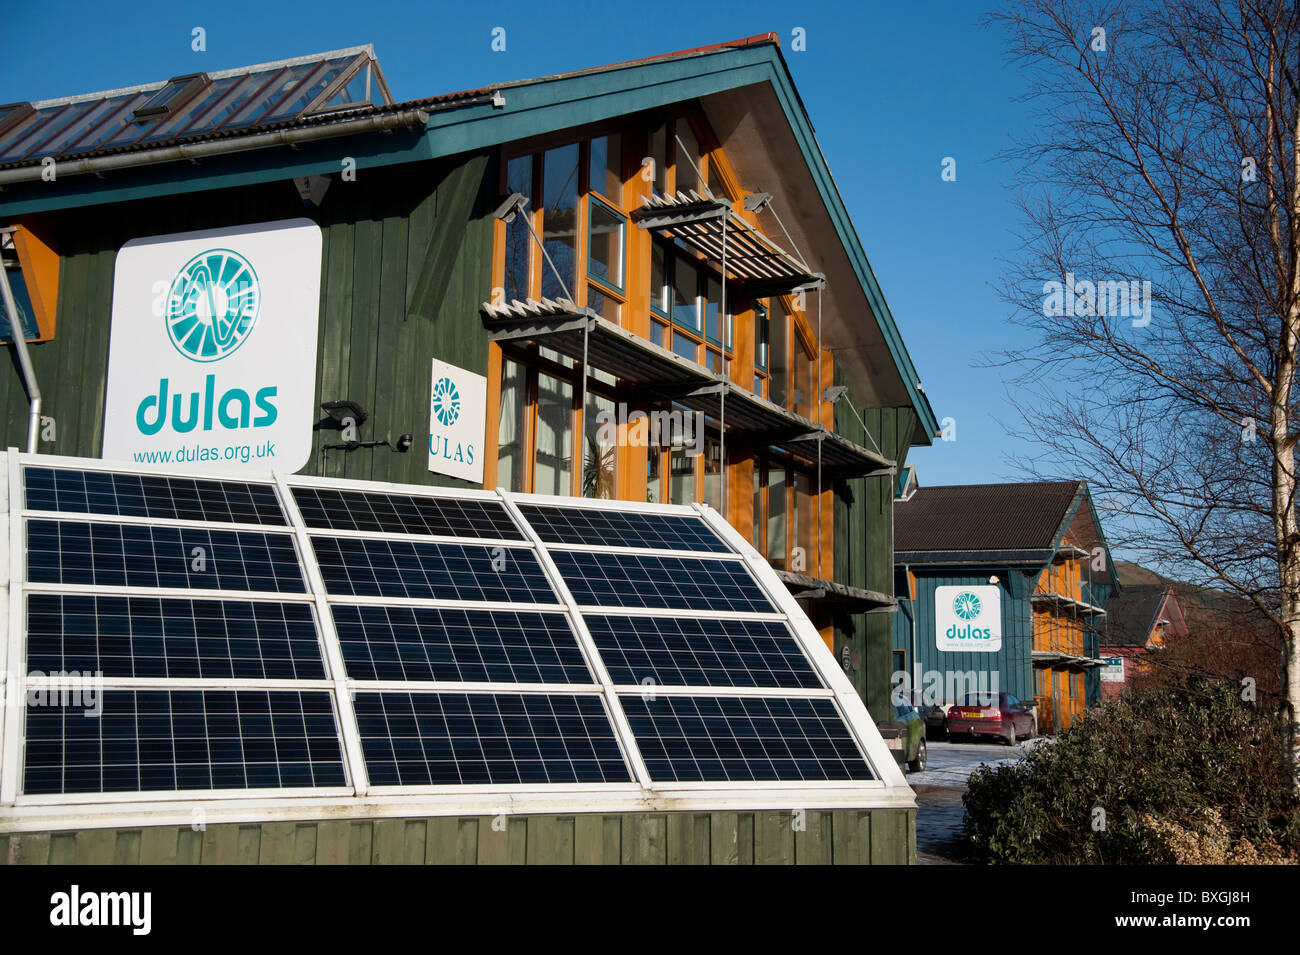 DULAS - professional services for renewable energy, Machynlleth Wales UK - Stock Image